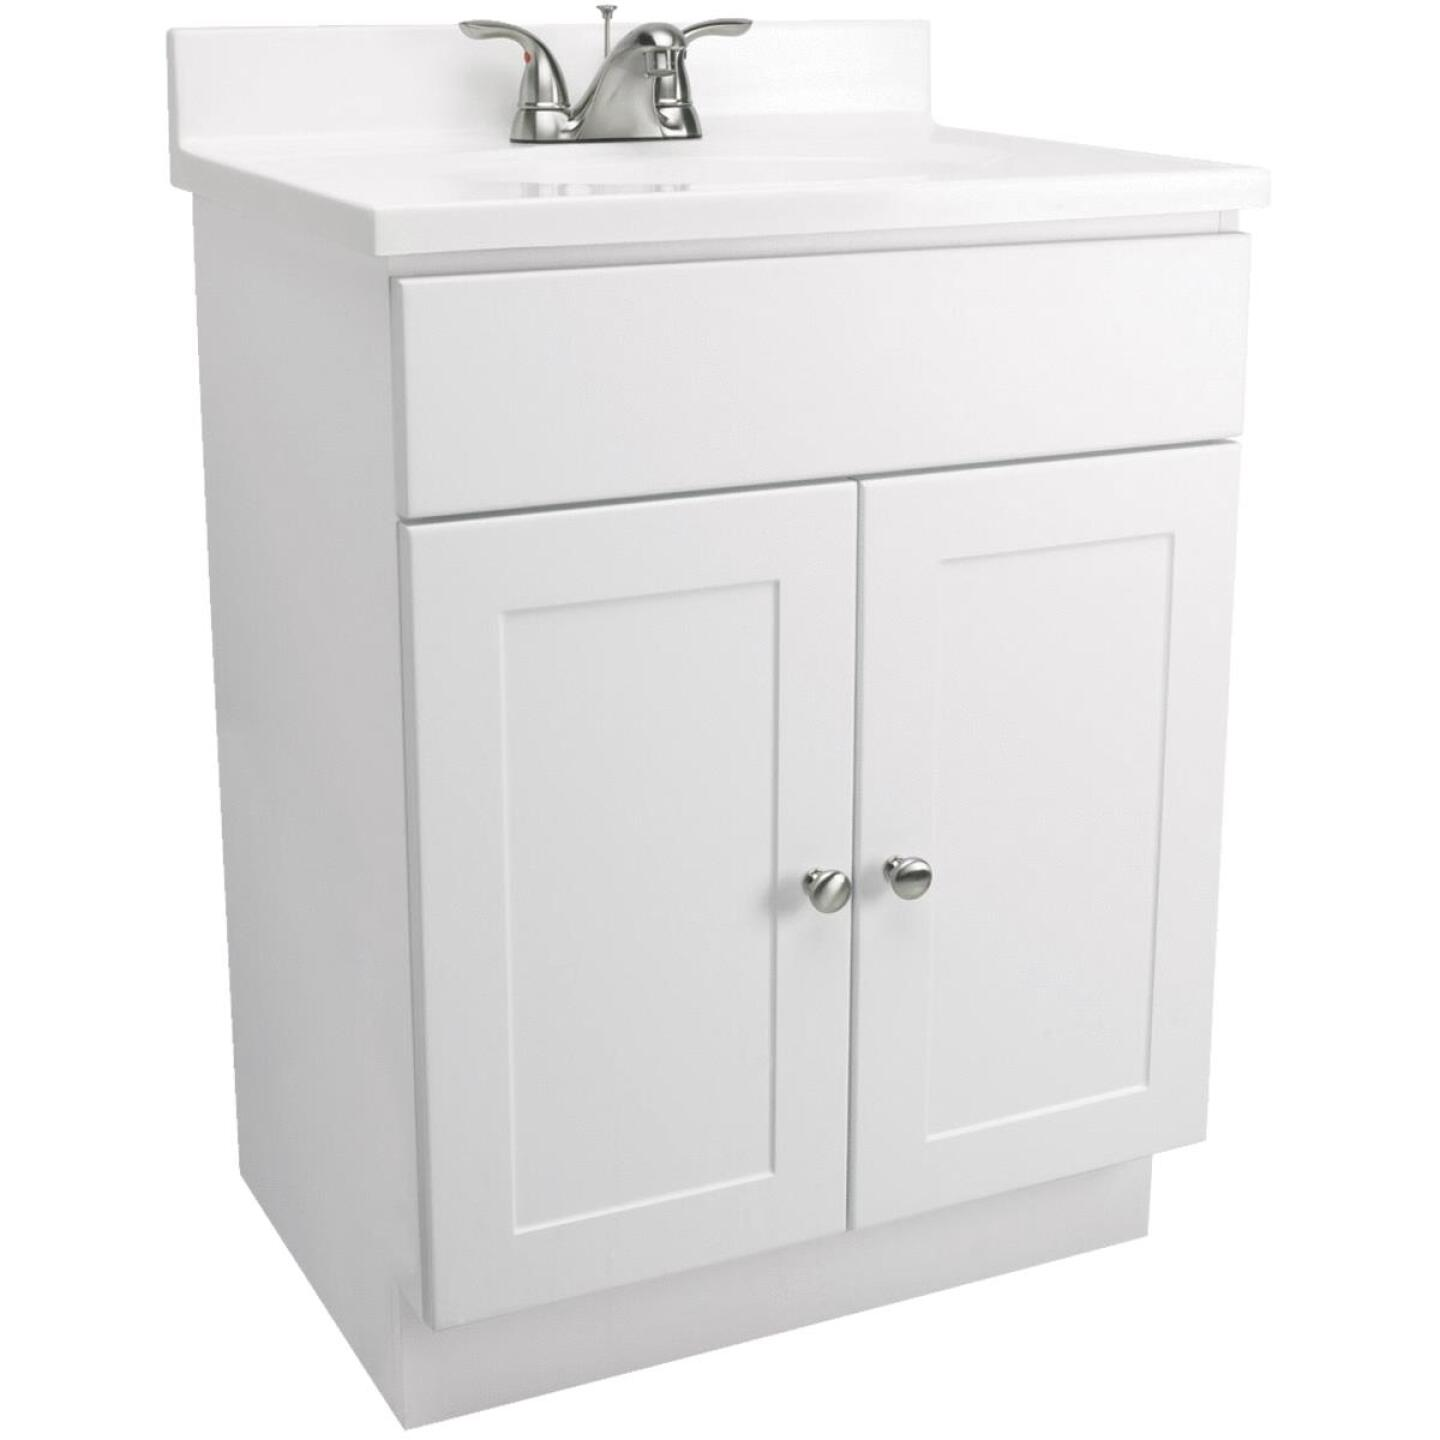 Design House White 30 In. W x 31-1/2 In. H x 18 In. D Combo Vanity with Cultured Marble Top Image 1